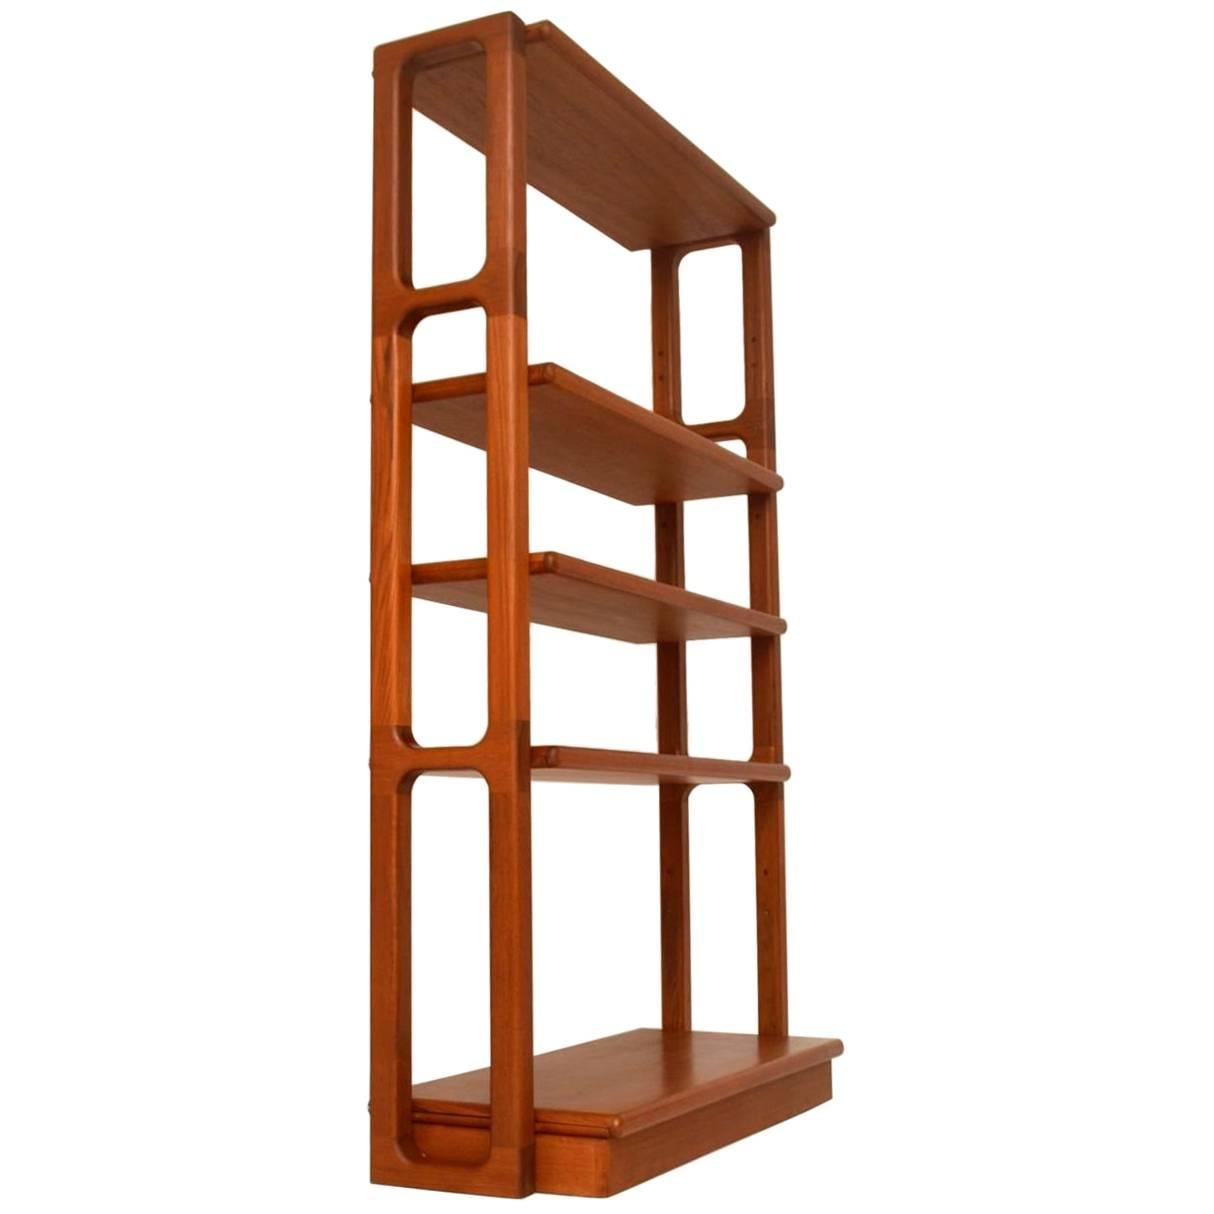 1960s danish teak vintage bookcase or room divider